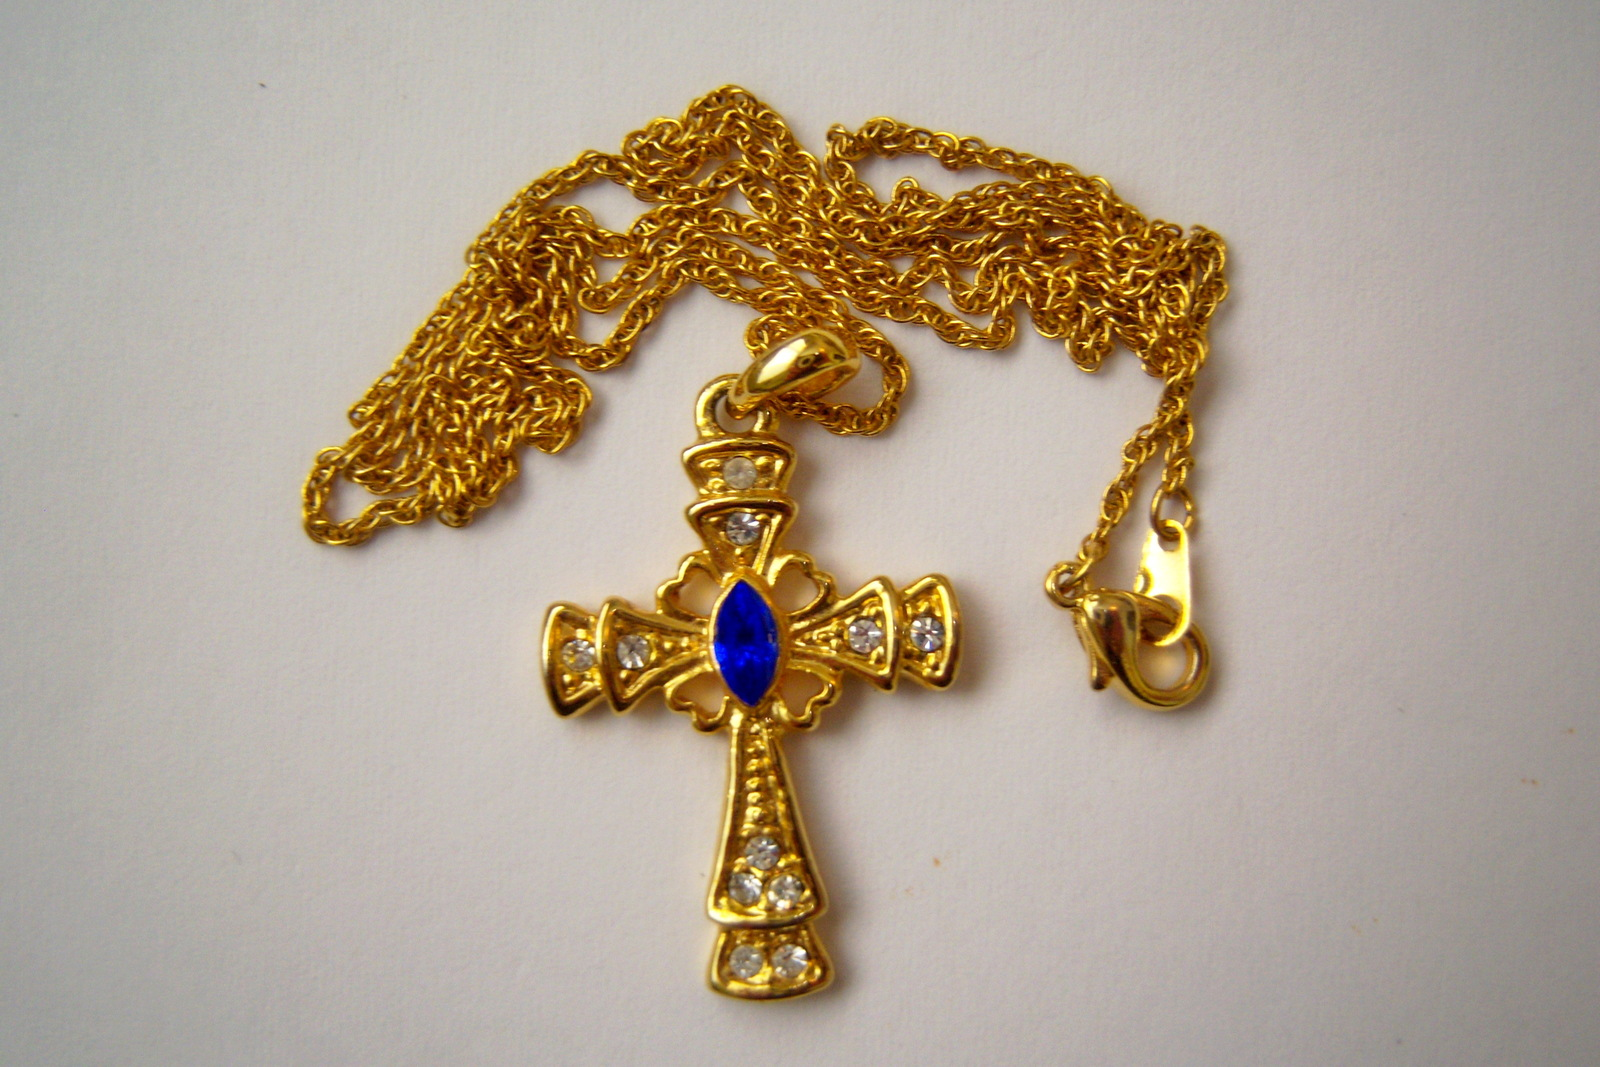 Cross Neclace. Christian Cross Jewelry. Cross With Blue And Clear Stones.